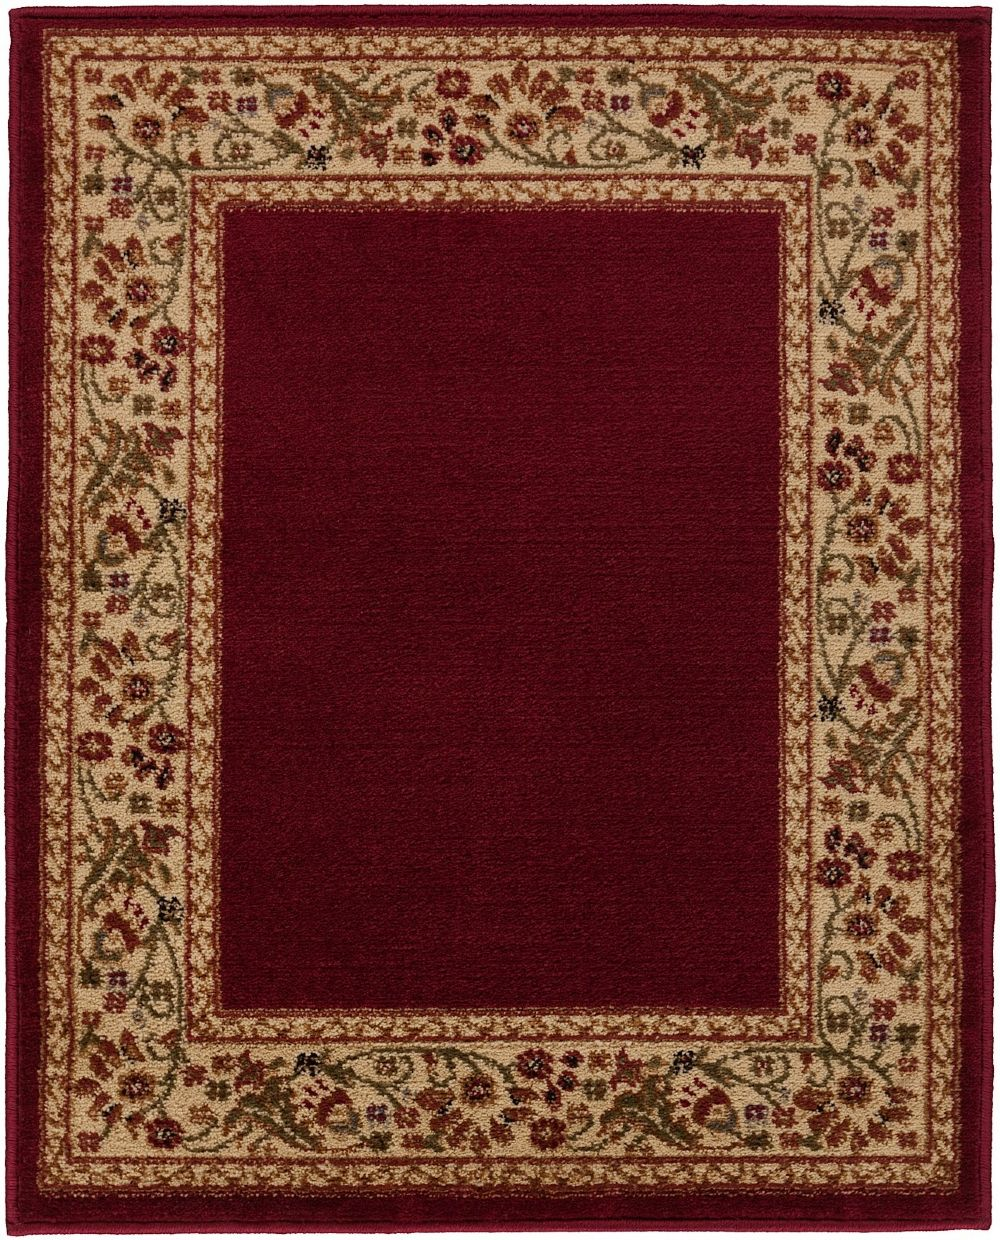 Round Or Rectangular Area Rug: Transitional Midtown Collection Area Rug In Multiple Color